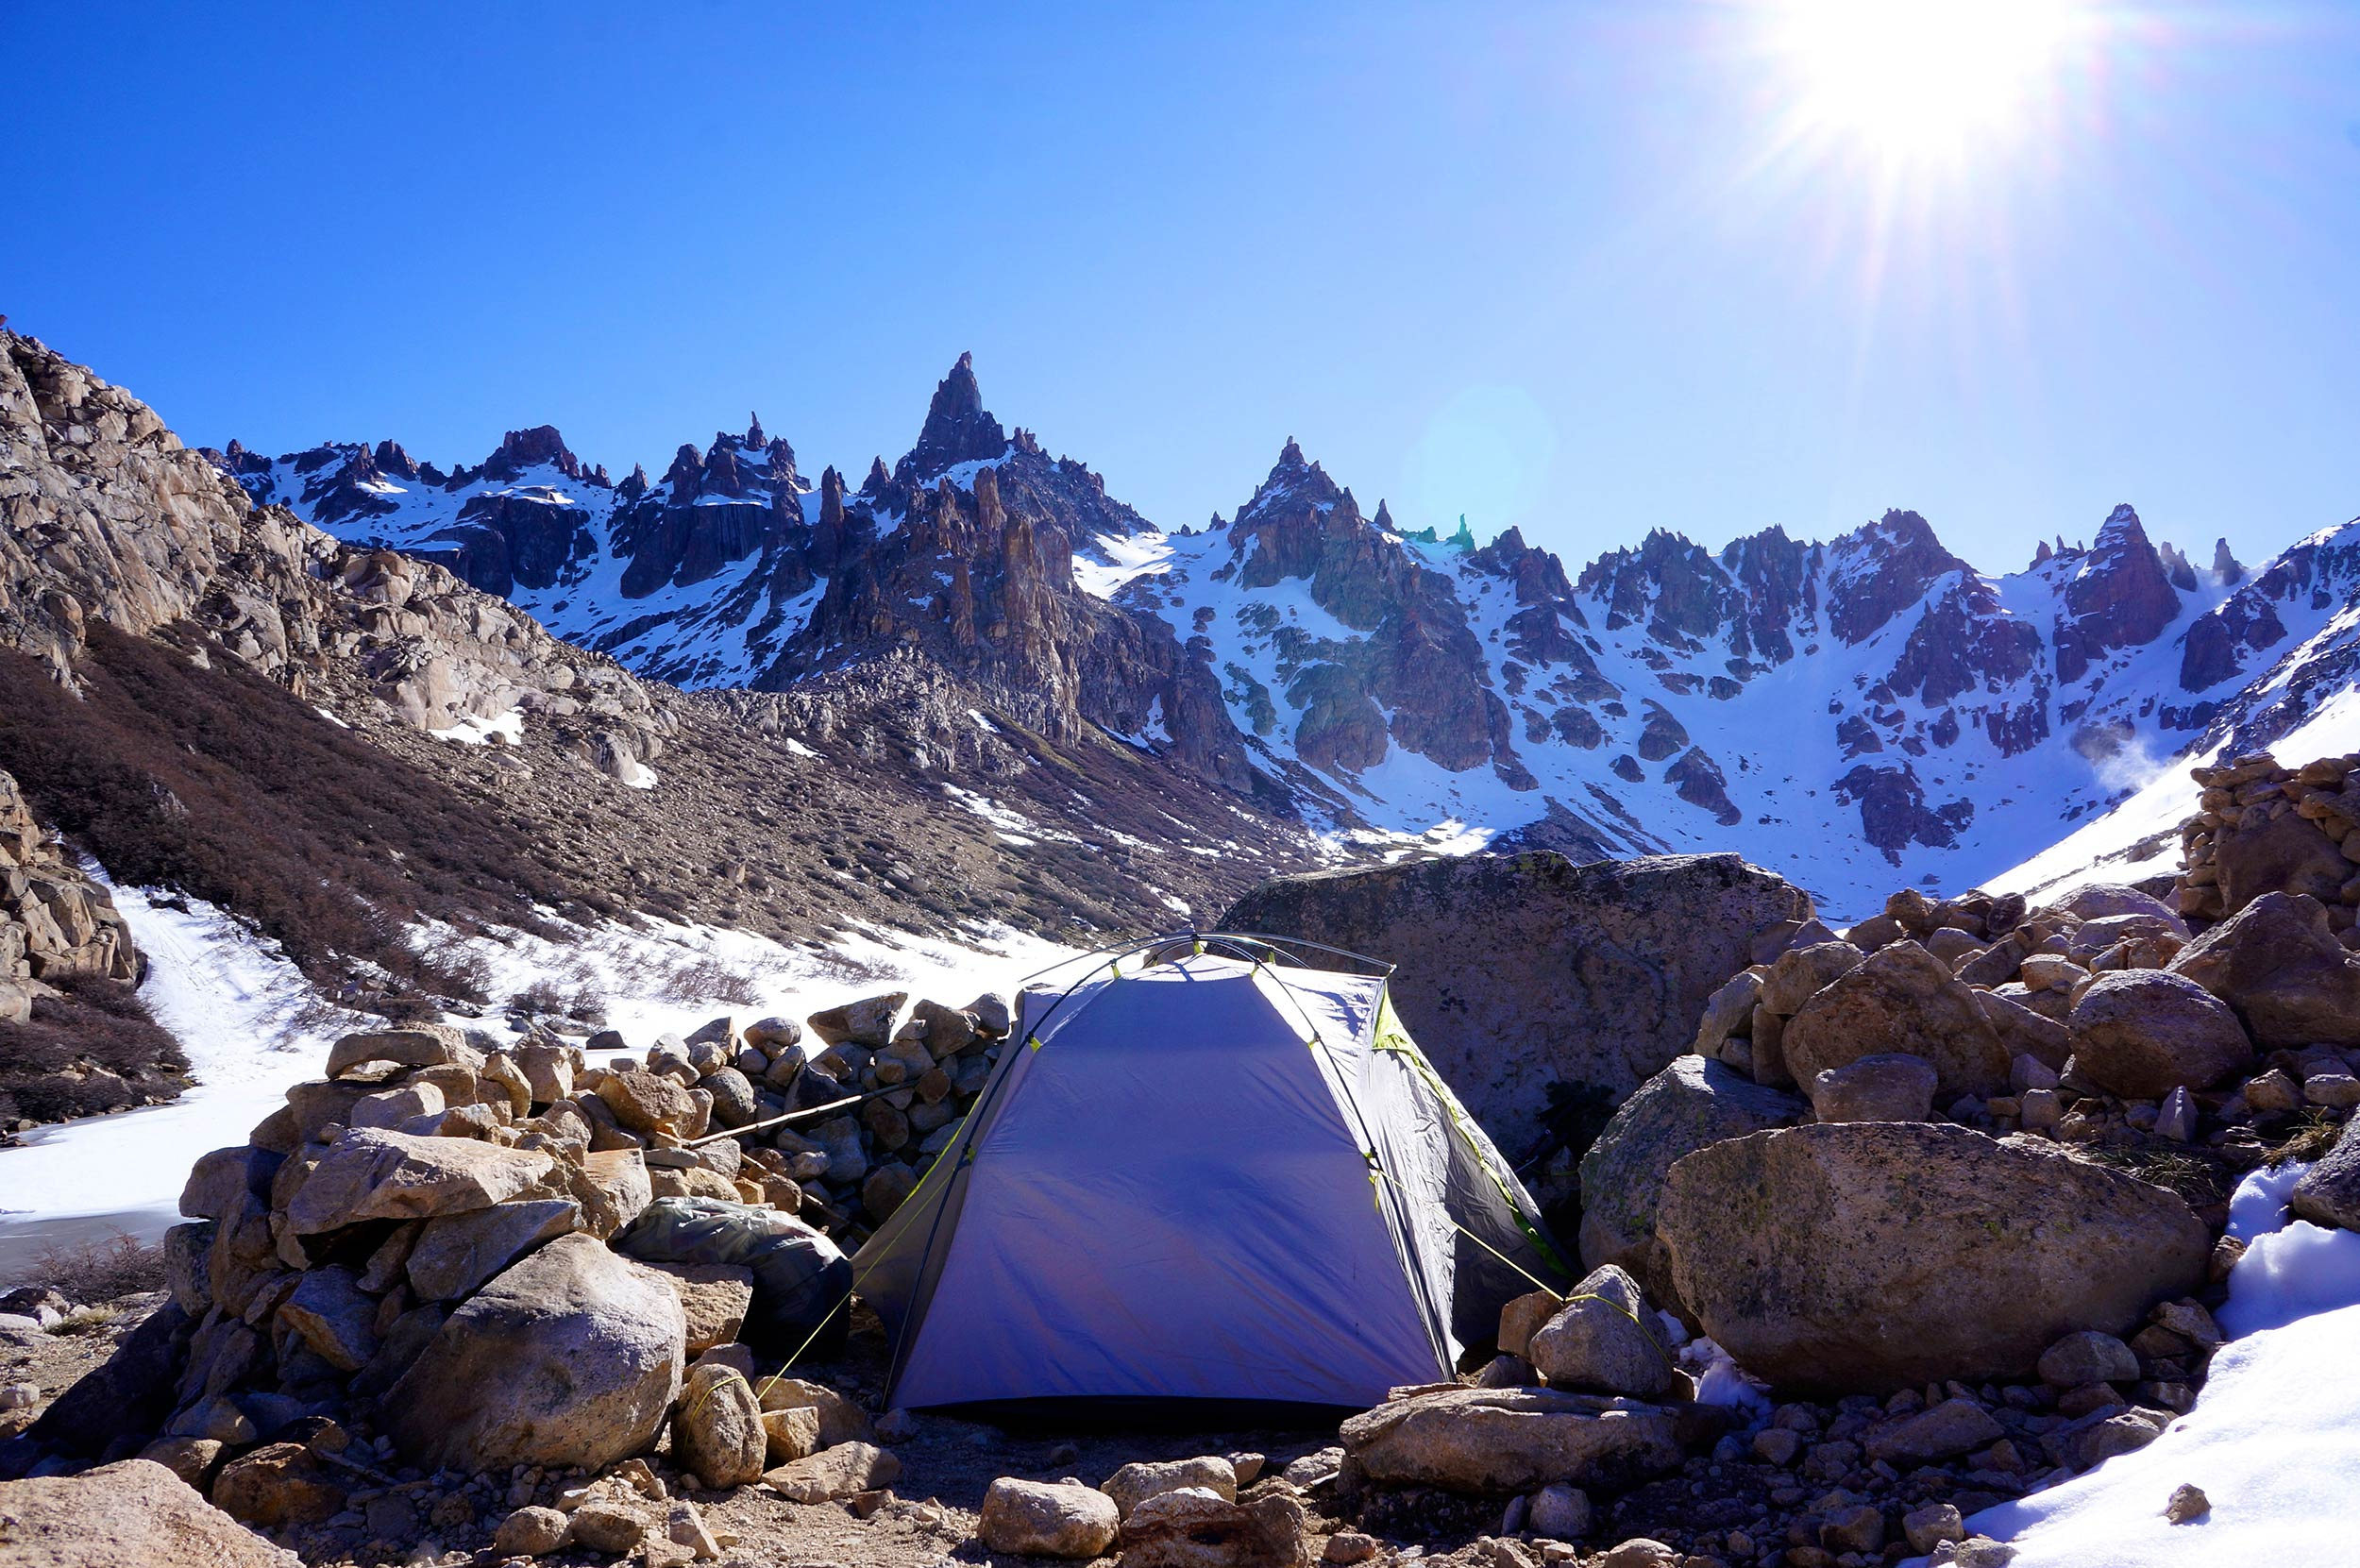 refugio_frey_tent_mountains.jpg